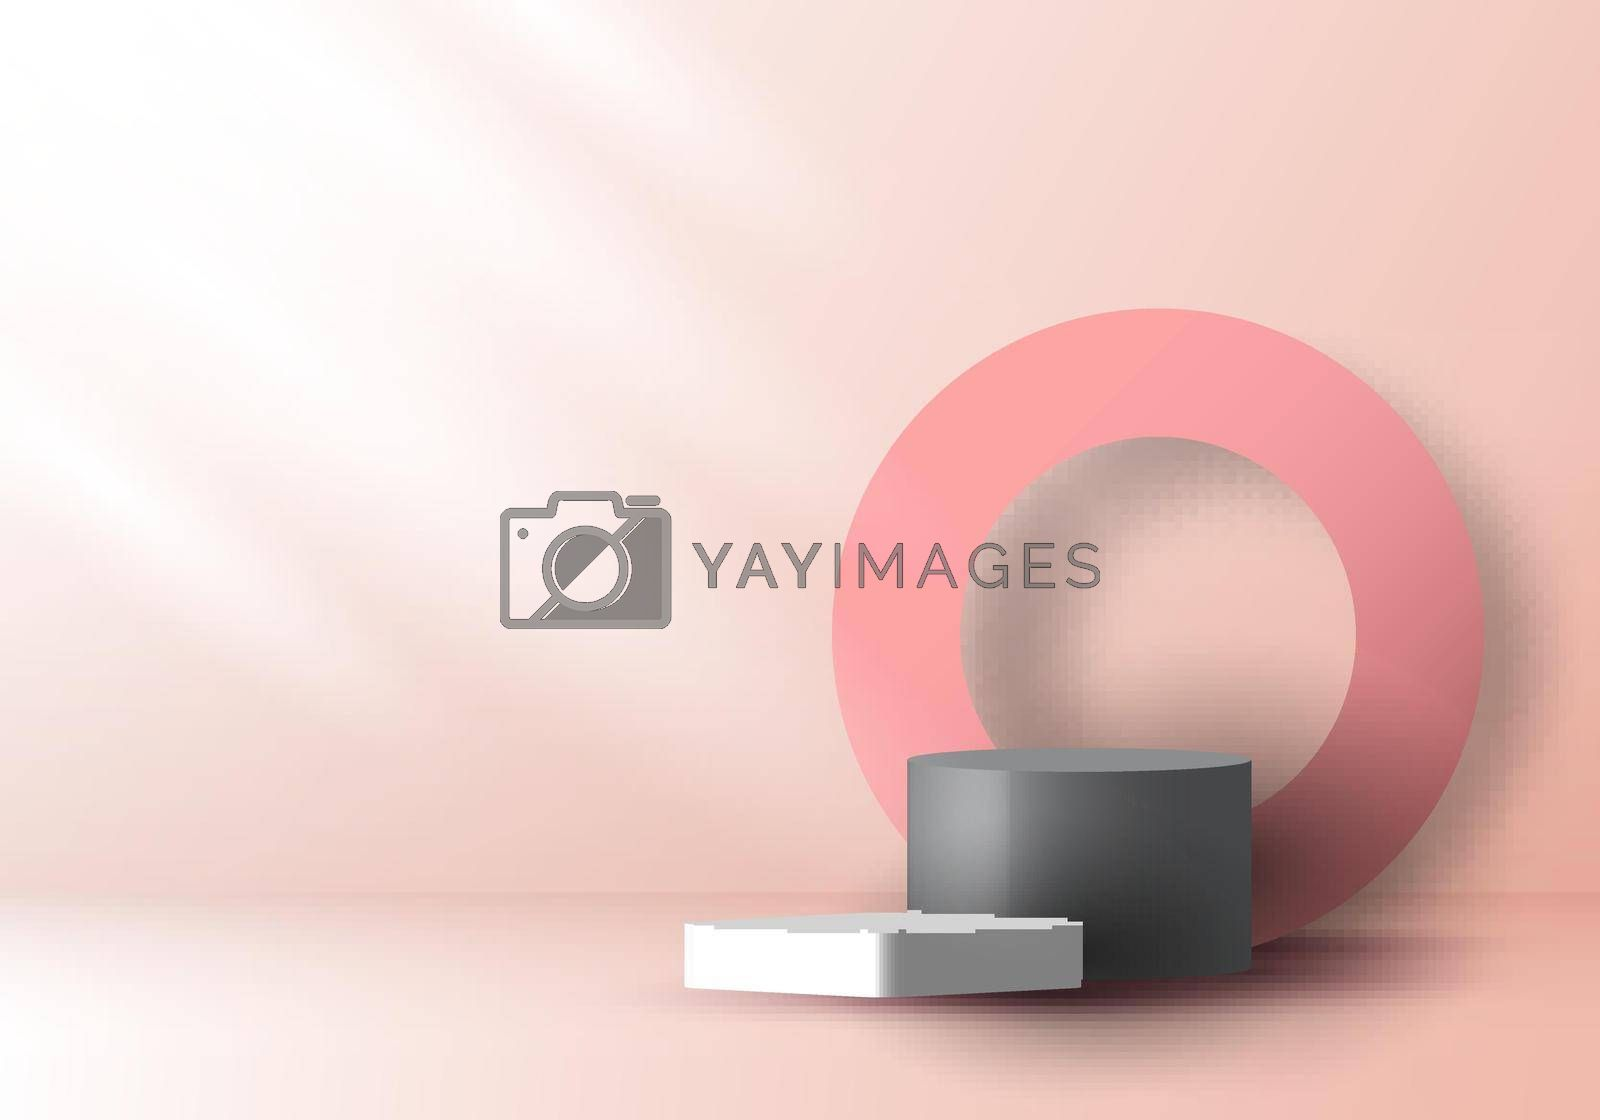 Royalty free image of 3D realistic pink and gray color geometric round shape stacked podium and circle backdro by phochi